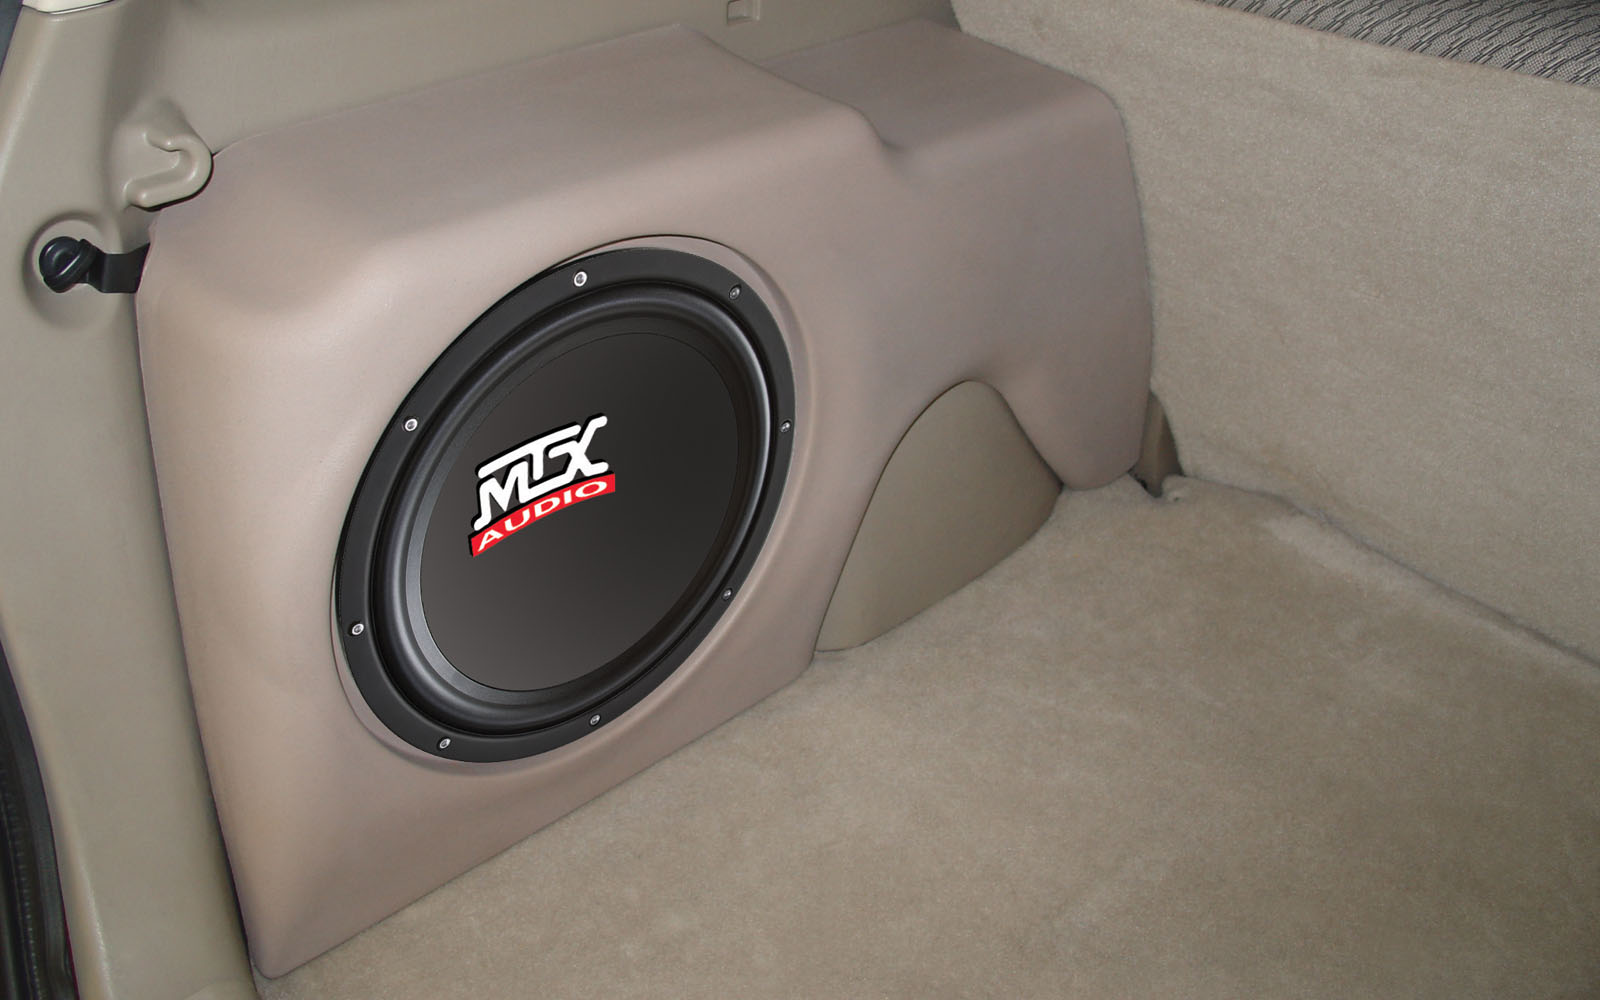 Ford Escape 2014 Custom >> Ford Escape 2001-2004 ThunderForm Custom Subwoofer Enclosure | MTX Audio - Serious About Sound®